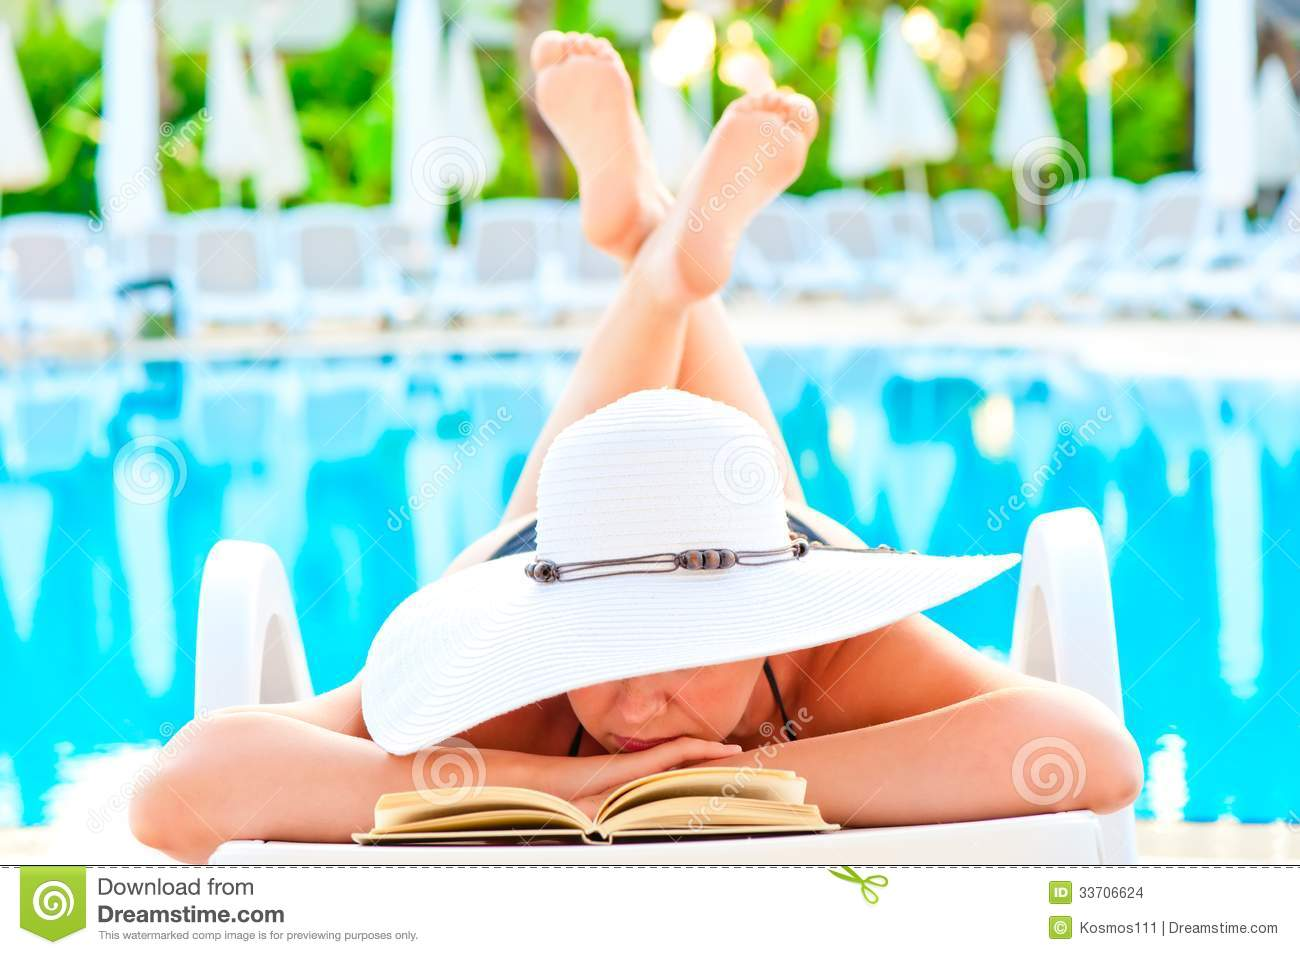 reading poolside lounge chair spandex cover rental girl in a near the pool and romance